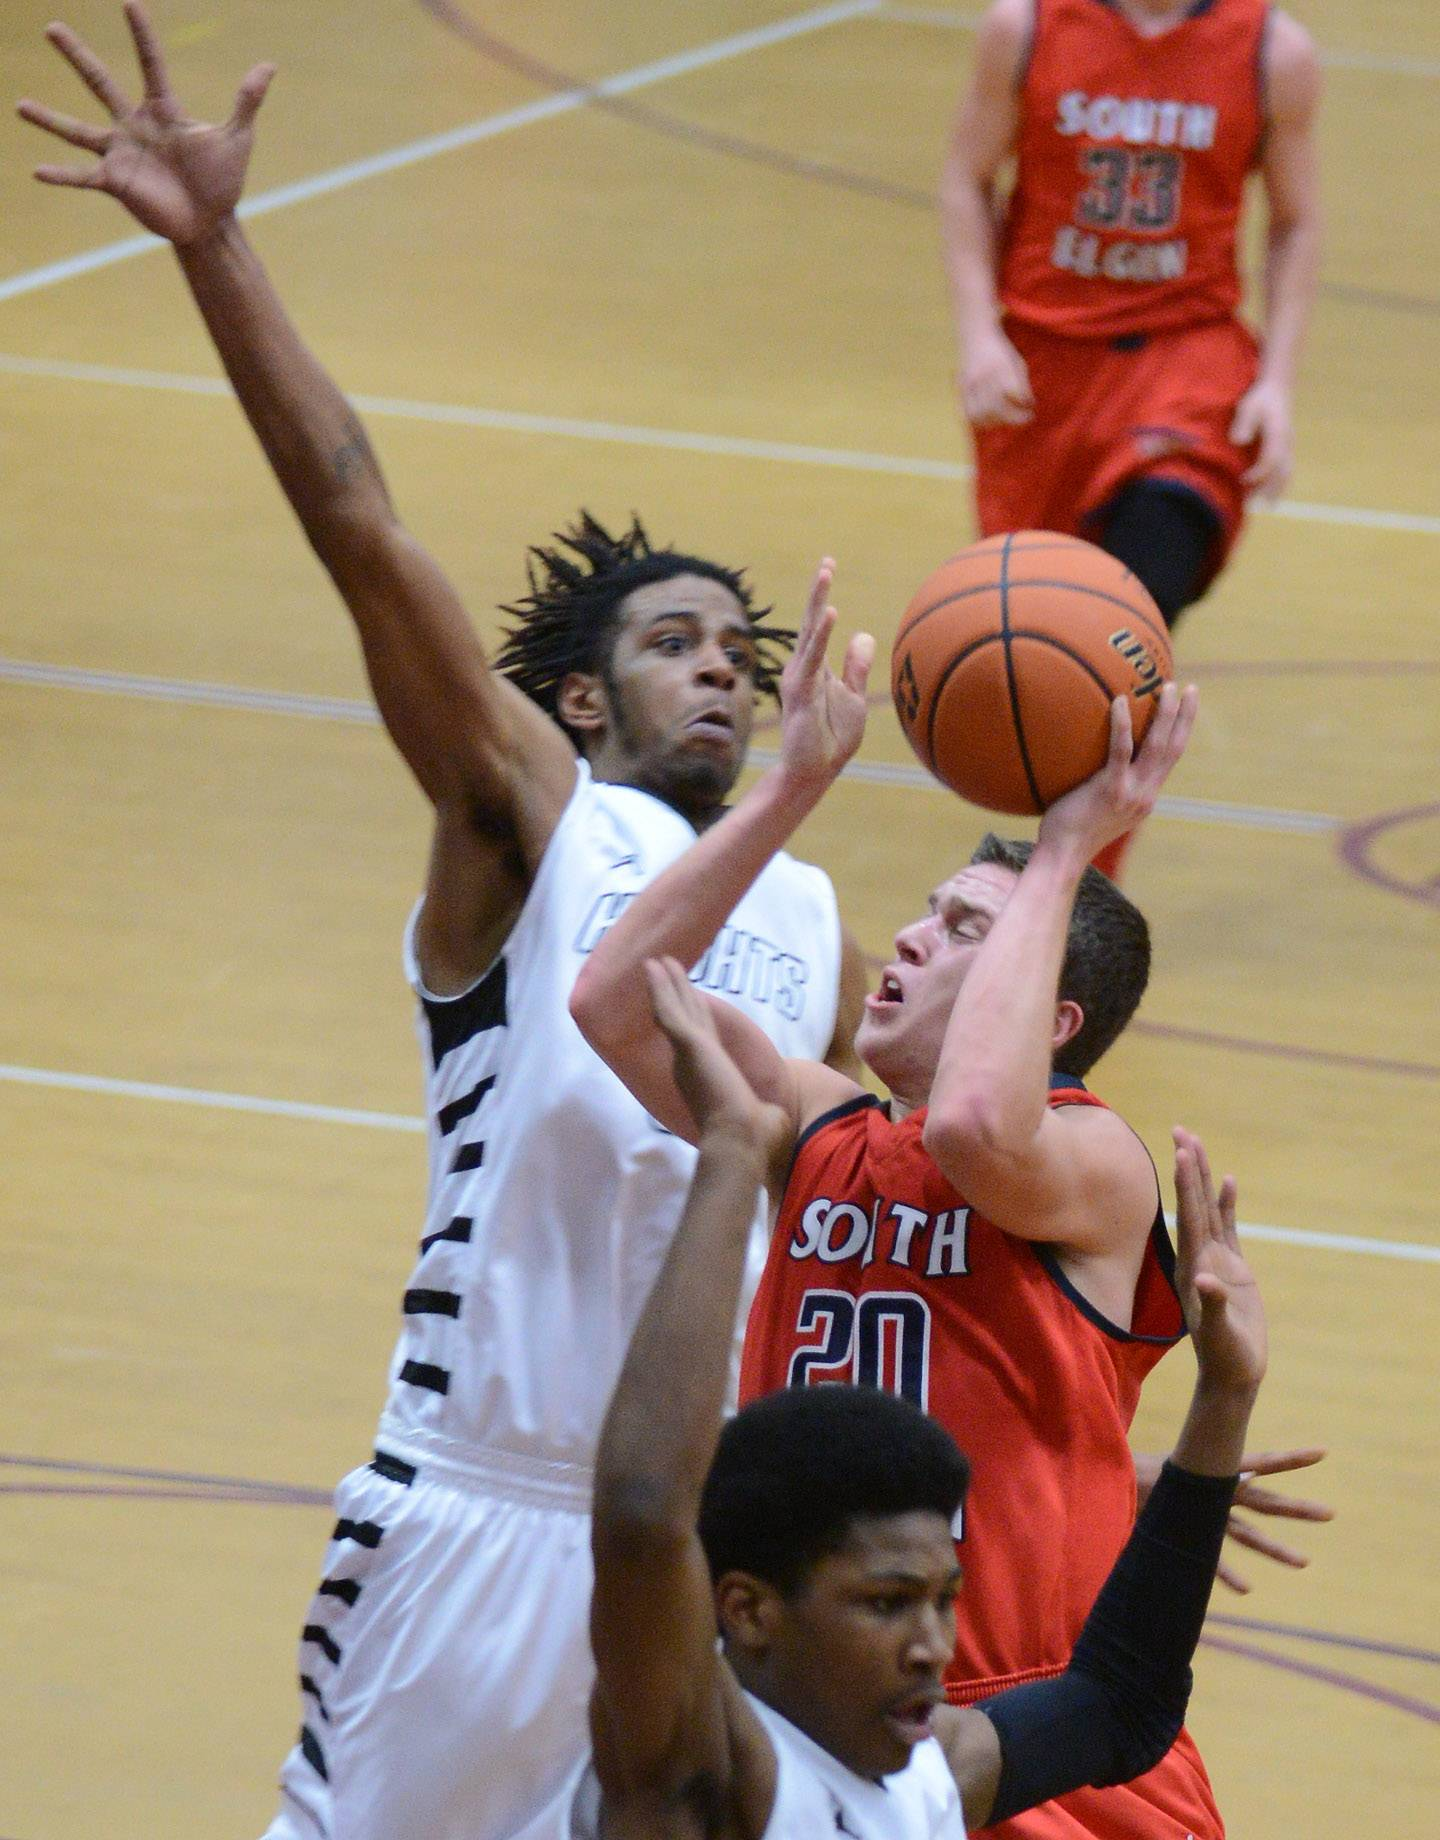 South Elgin's Matt McClure (20) is about to have his shot blocked by Rockford Auburn's Nylek Cobb (5) during Friday's Class 4A Elgin sectional final.